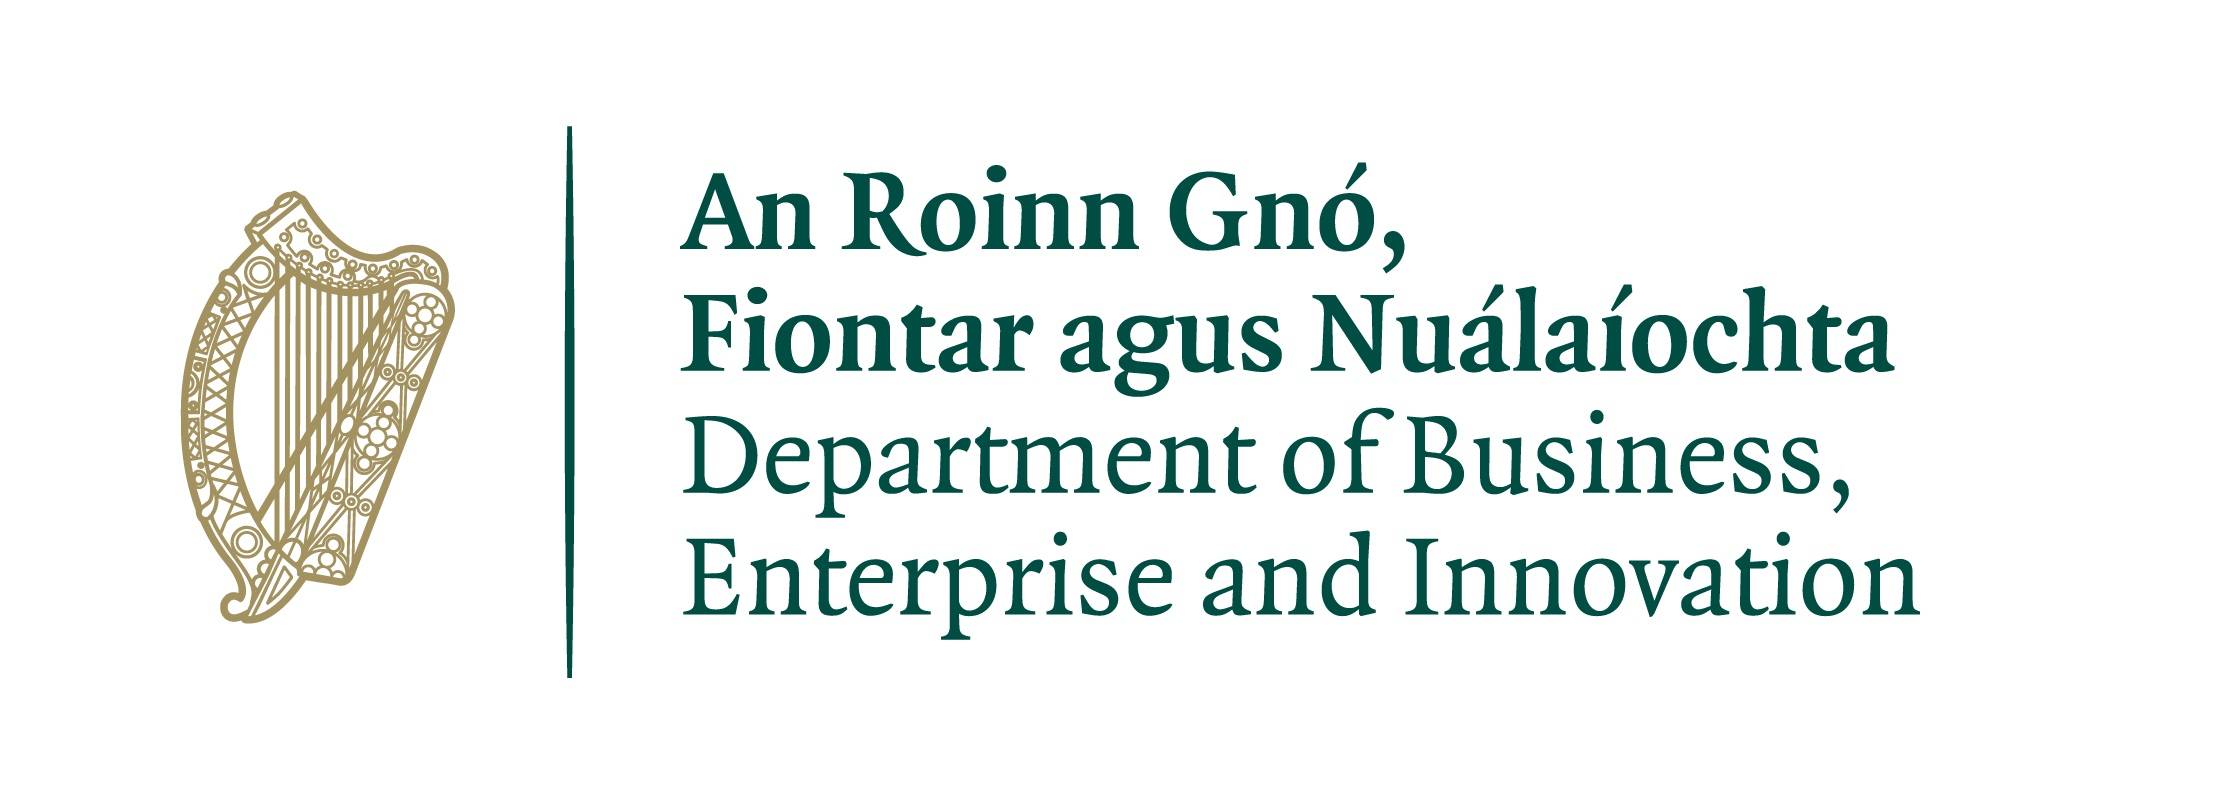 Department of Business, Enterprise and Innovation logo